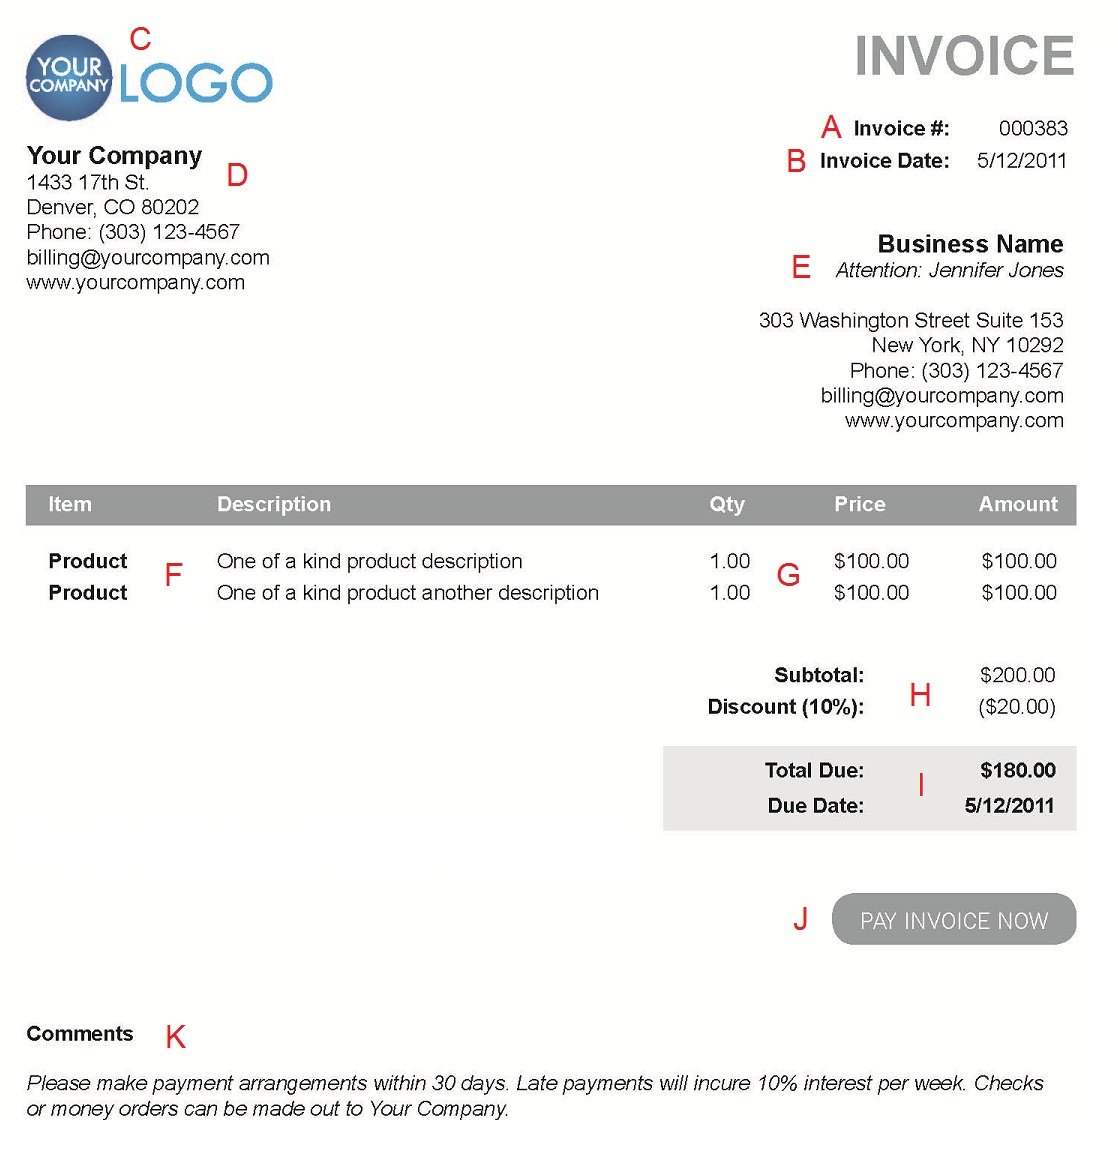 Patriotexpressus  Pleasing The  Different Sections Of An Electronic Payment Invoice With Inspiring A  With Appealing Sending An Invoice On Paypal Also Best Invoice Software For Small Business In Addition Create Invoices Free And What Is Commercial Invoice As Well As How To Pay Invoice Additionally Automobile Invoice Prices From Paysimplecom With Patriotexpressus  Inspiring The  Different Sections Of An Electronic Payment Invoice With Appealing A  And Pleasing Sending An Invoice On Paypal Also Best Invoice Software For Small Business In Addition Create Invoices Free From Paysimplecom